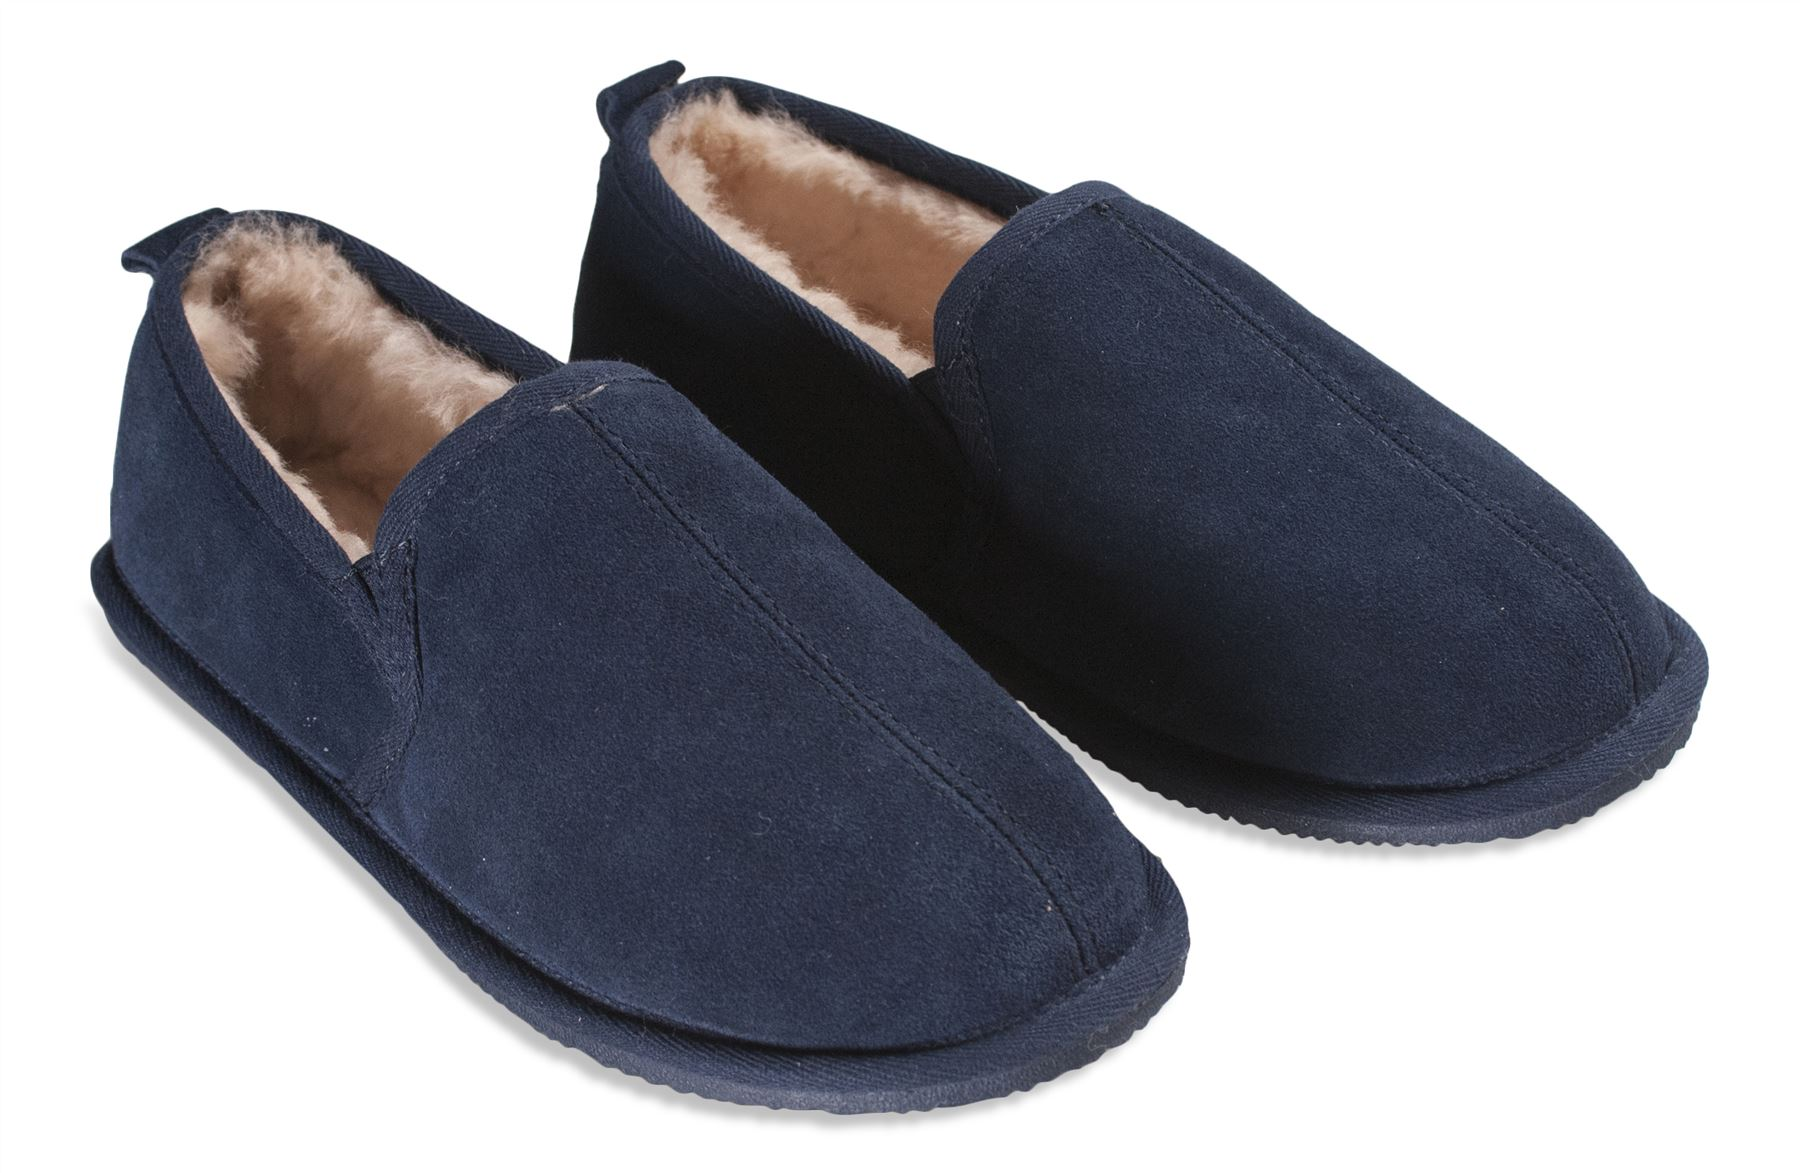 Blue Slipper Shoes